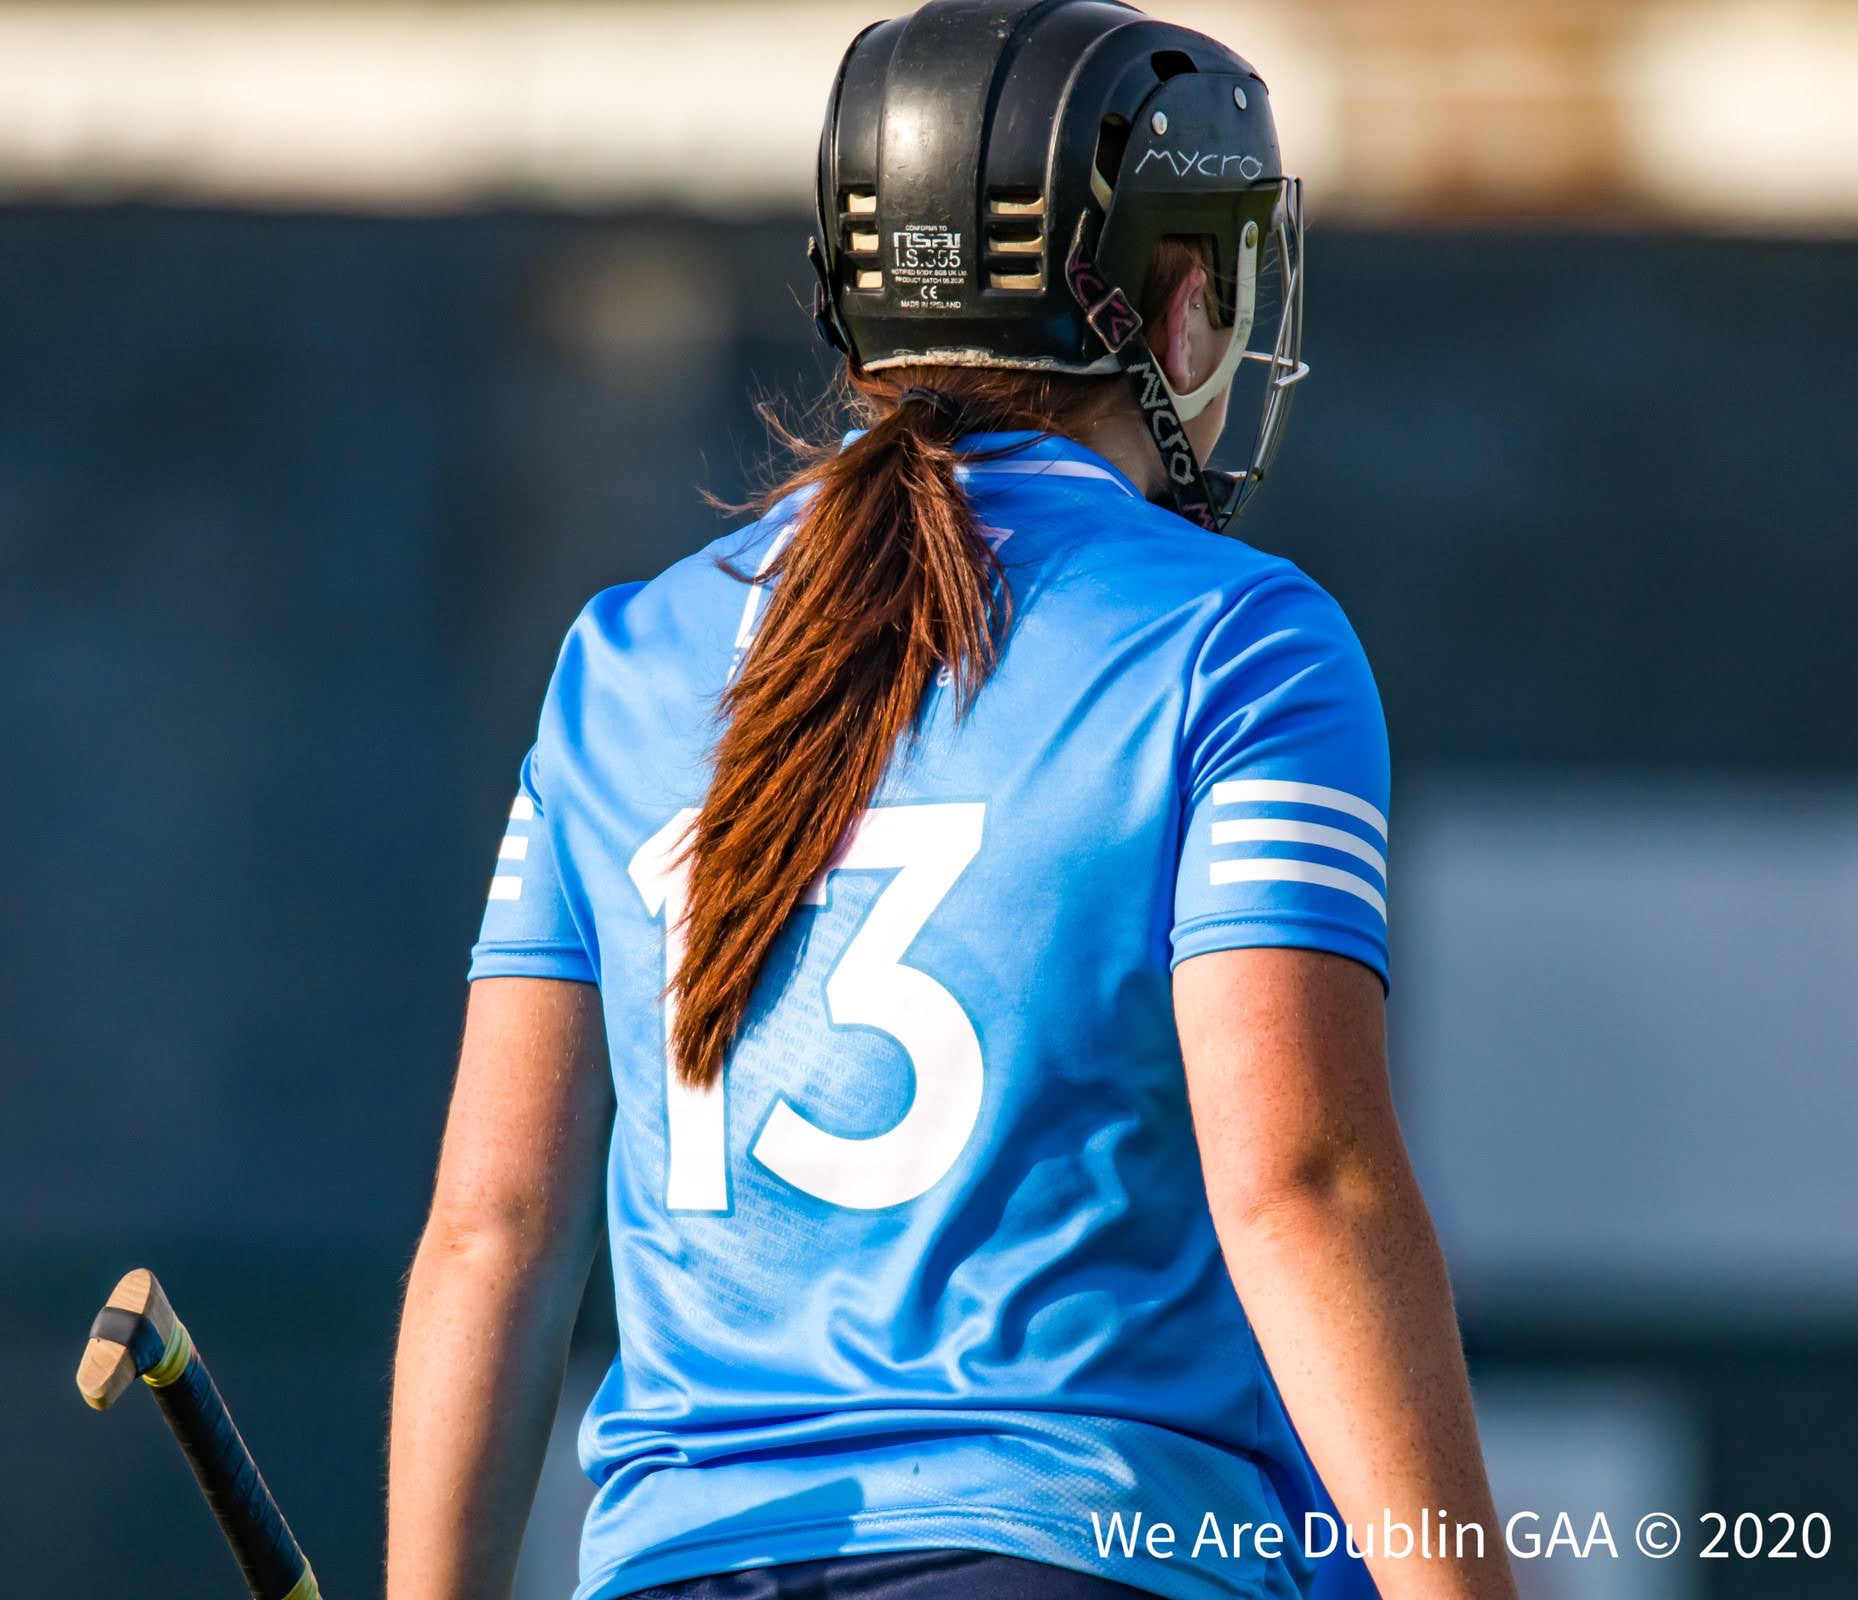 Dubli. Senior Camogie player with number 13 on the back of her jersey, new Dublin Senior Camogie manager Adrian O'Sullivan has named his first team who will face Kilkenny